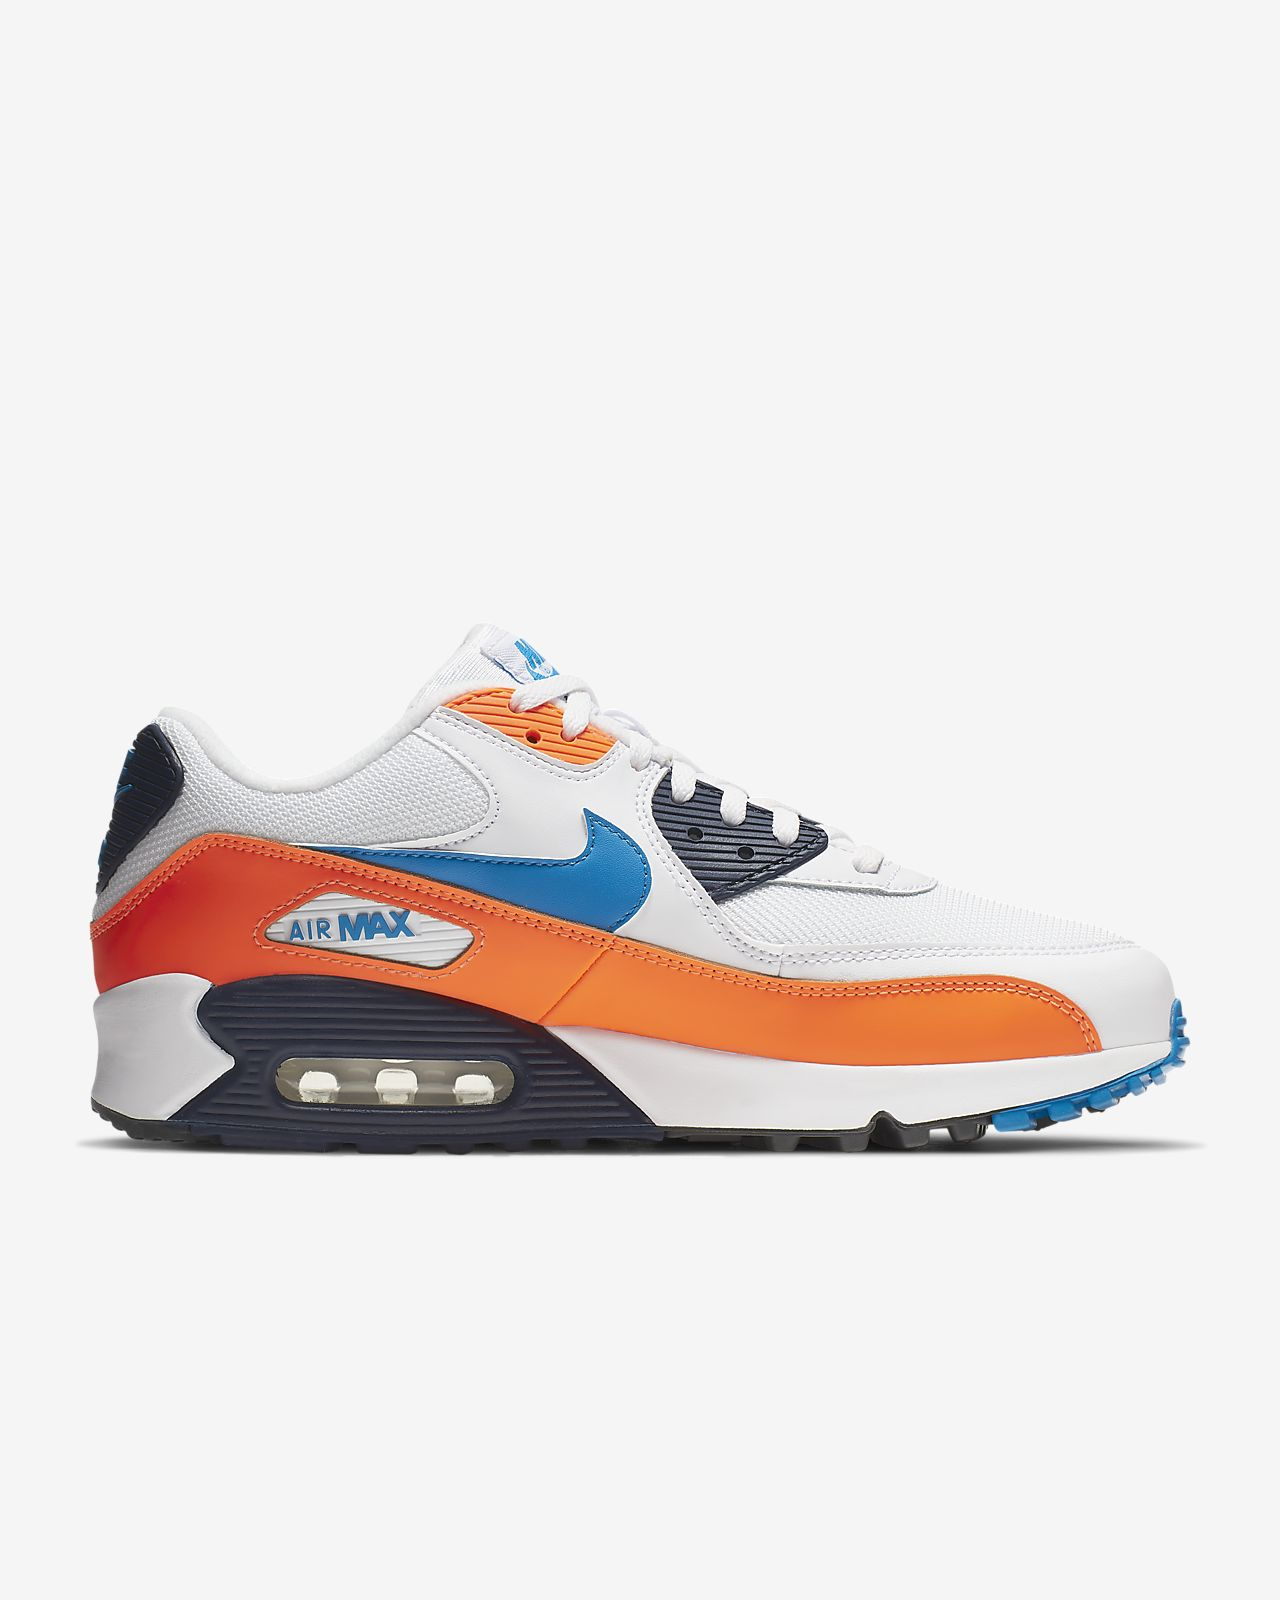 NIKE AIR MAX 90 ESSENTIAL VE, 15